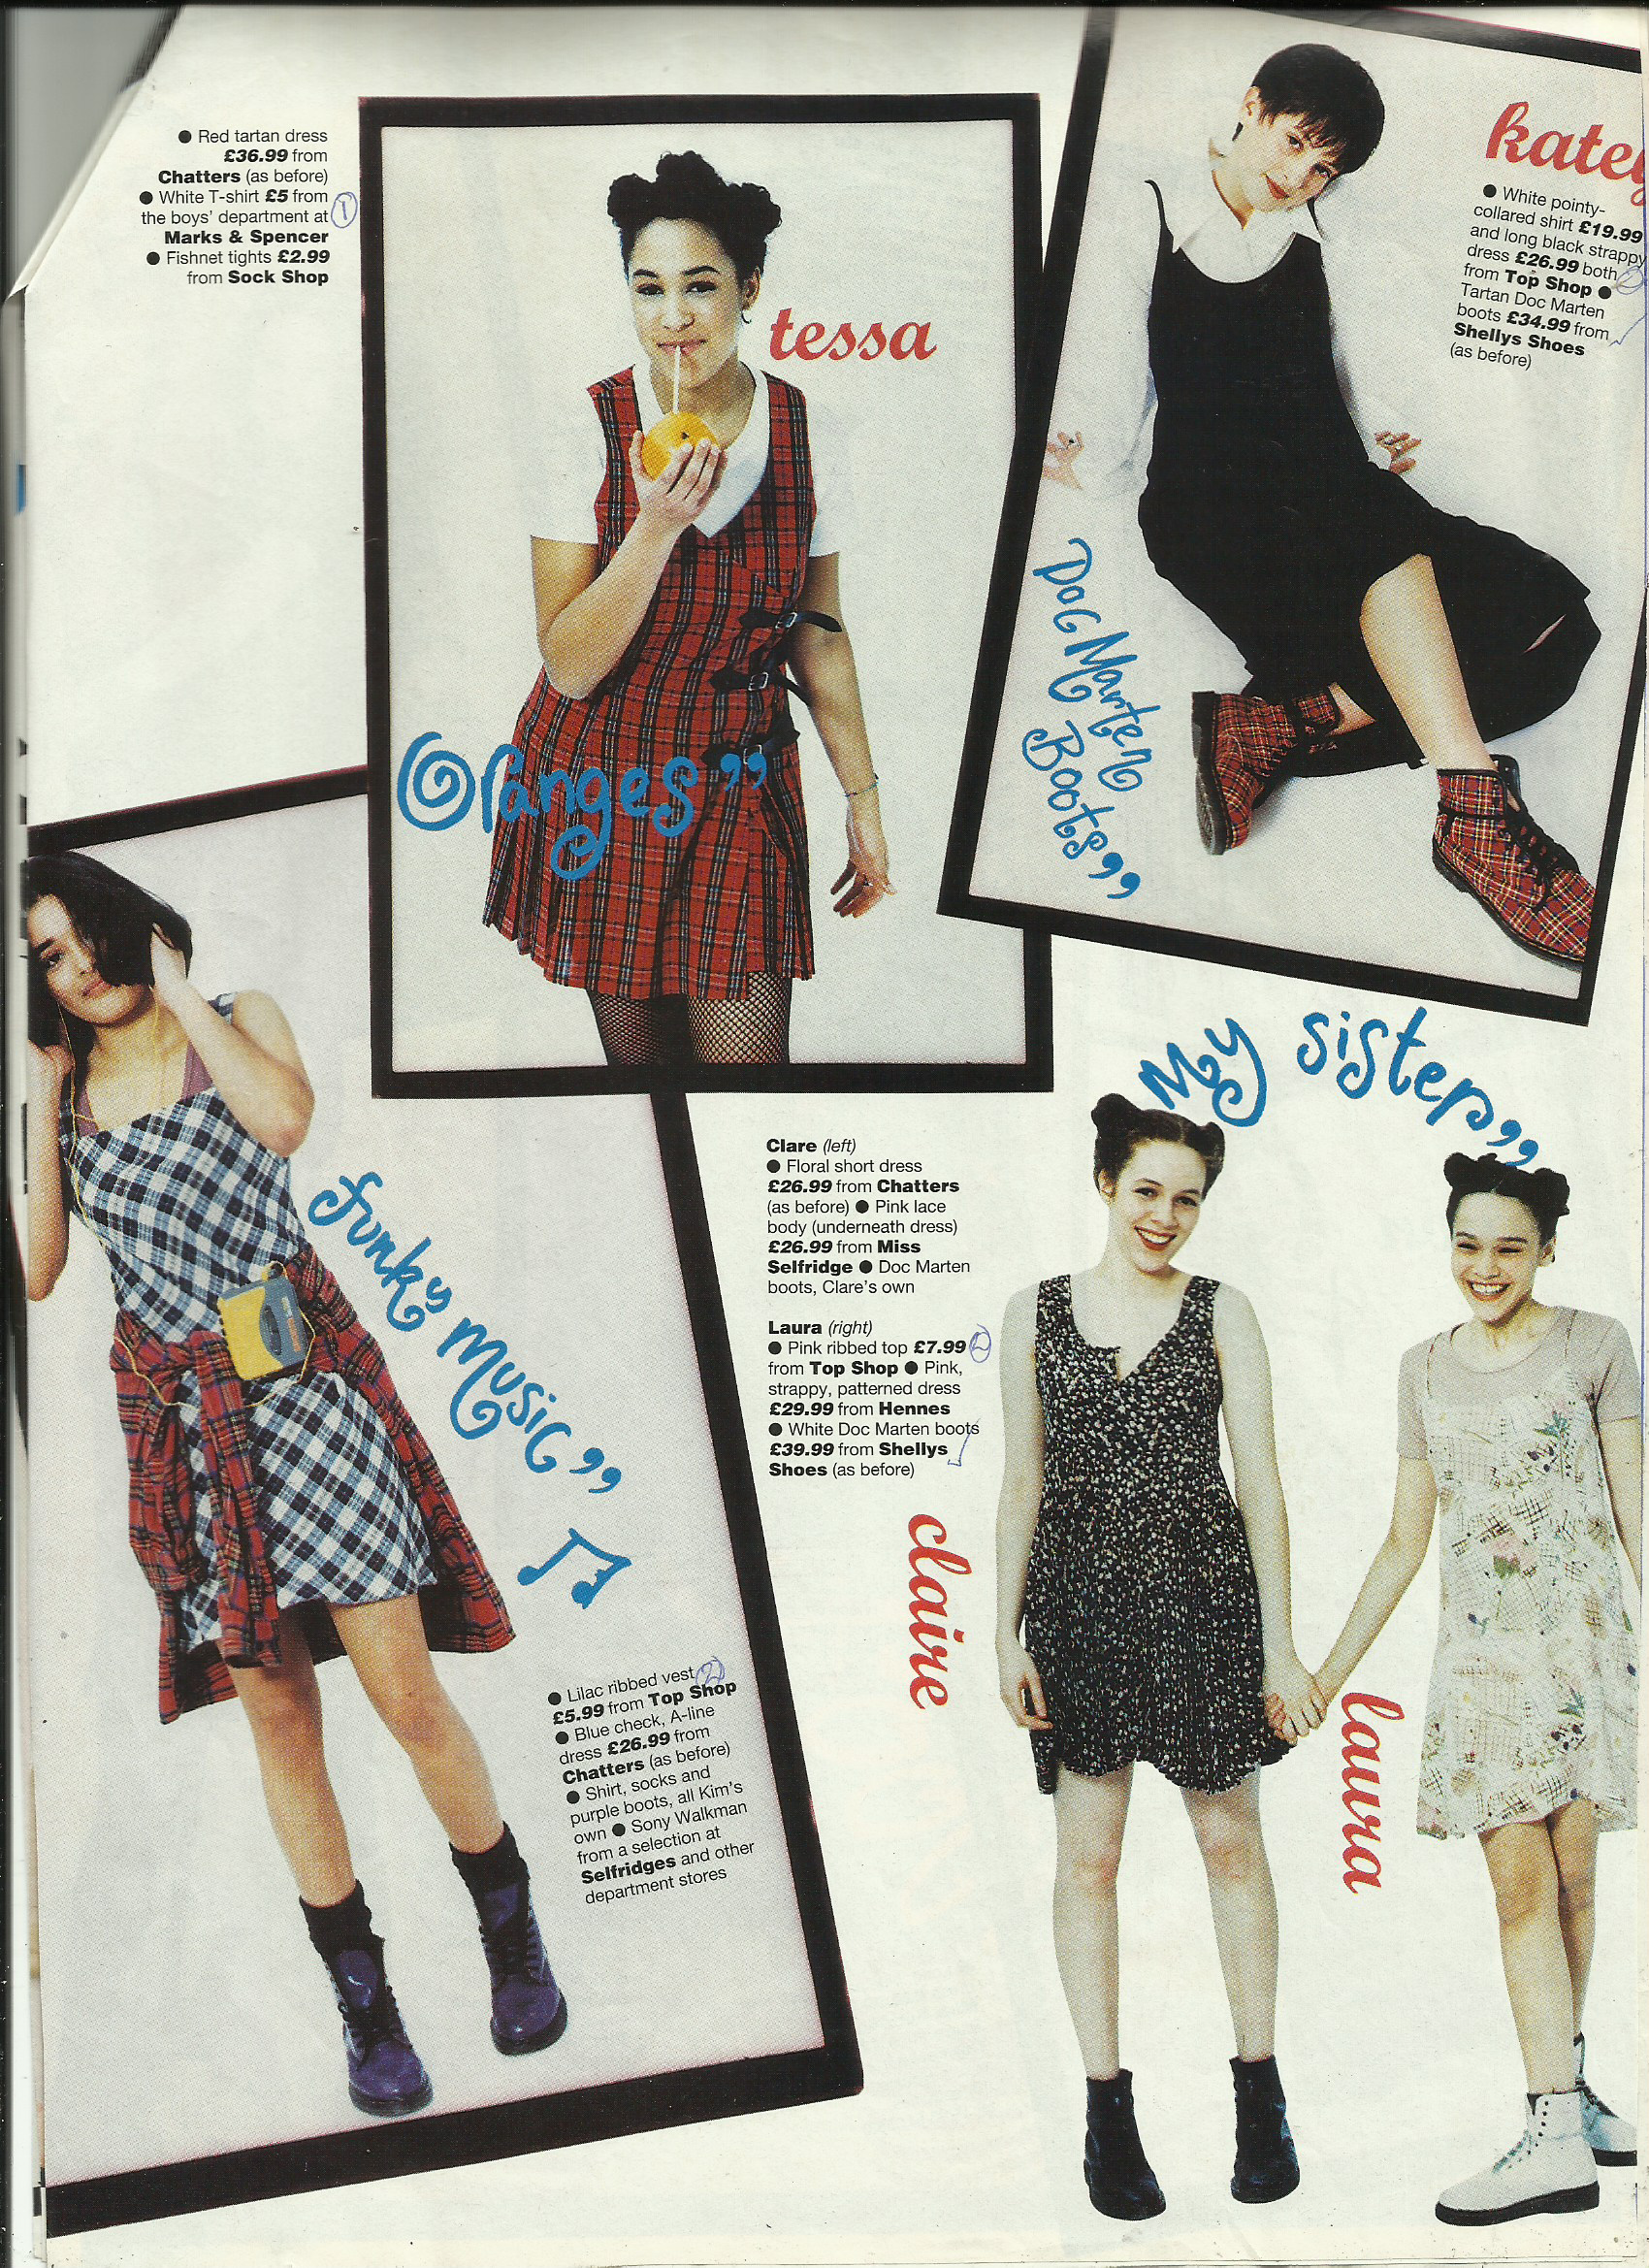 Just Seventeen Magazine 1994 I Remember Wanting All The Clothes That Were Used In This Photoshoot 90s Fashion 90s Fashion Grunge 90s Fashion Trending